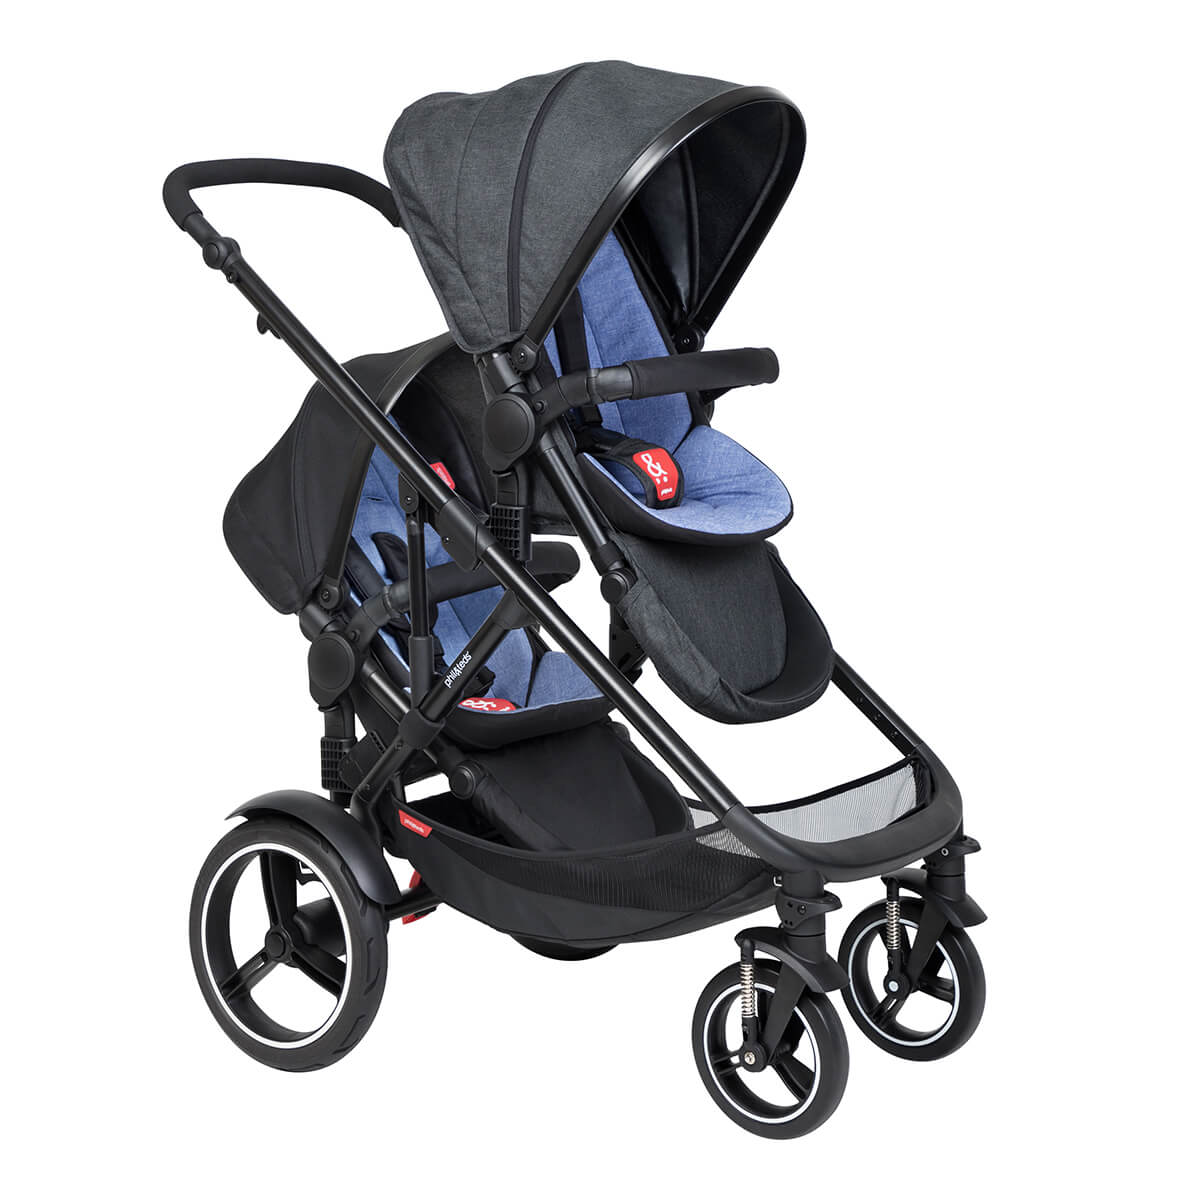 https://cdn.accentuate.io/4509528916056/19272668348504/philteds-voyager-inline-buggy-with-double-kit-in-rear-in-sky-blue-colour-v1626484606623.jpg?1200x1200